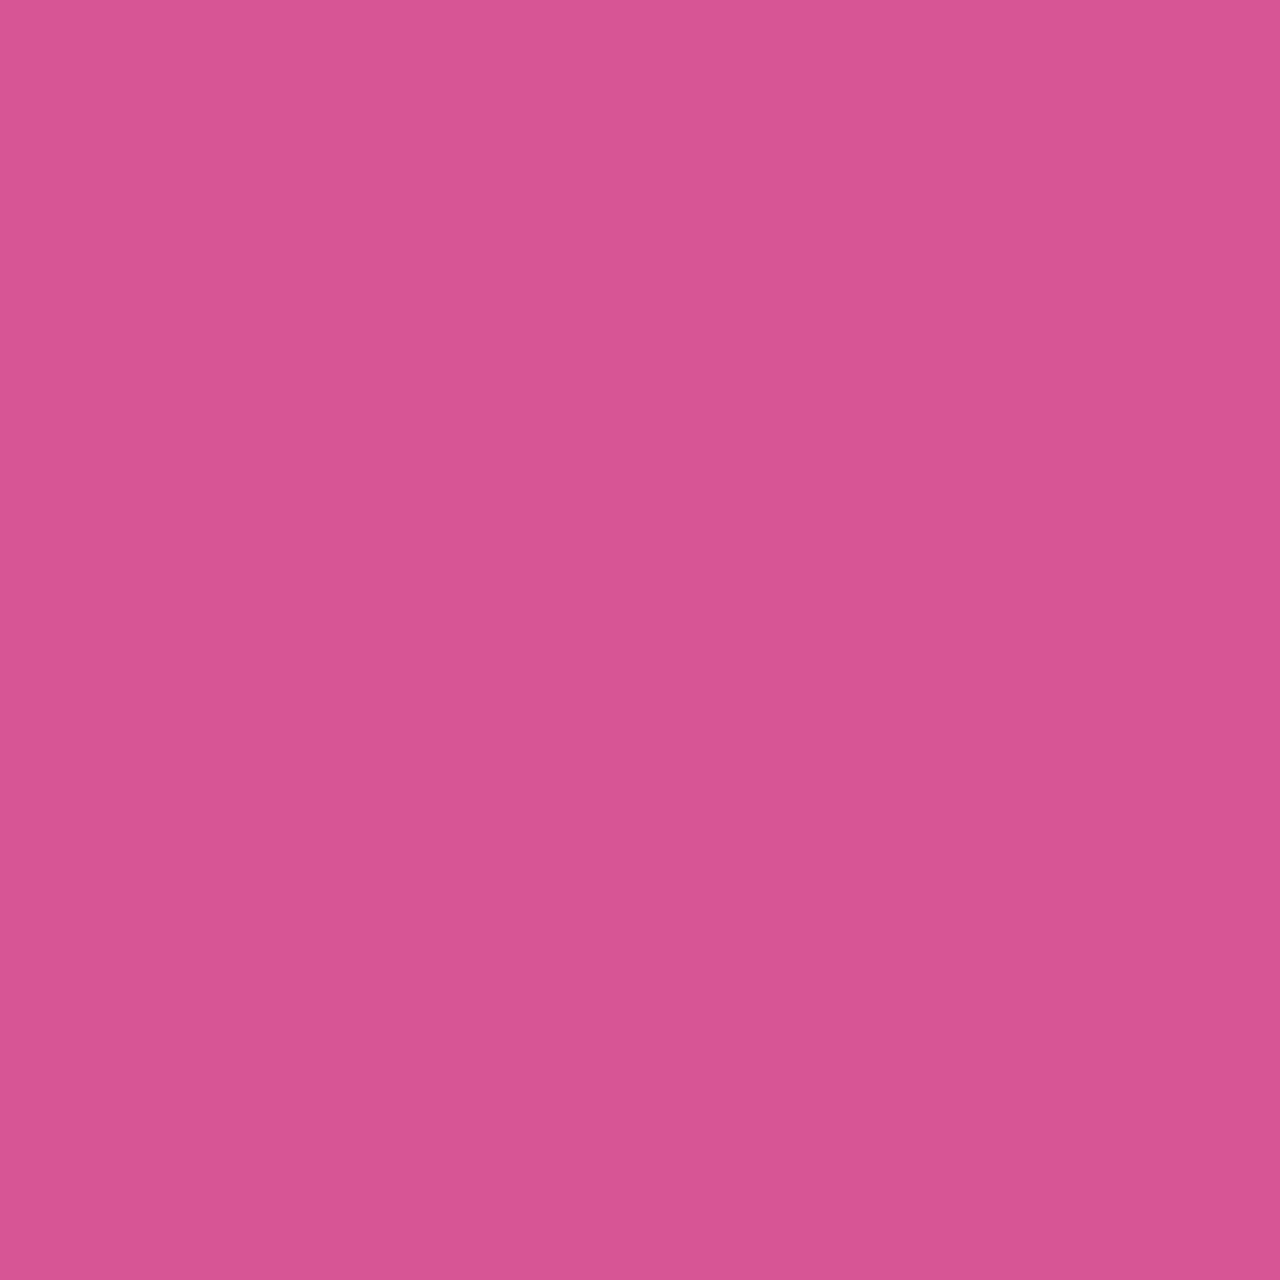 #0043 Rosco Gels Roscolux Deep Pink, 20x24""